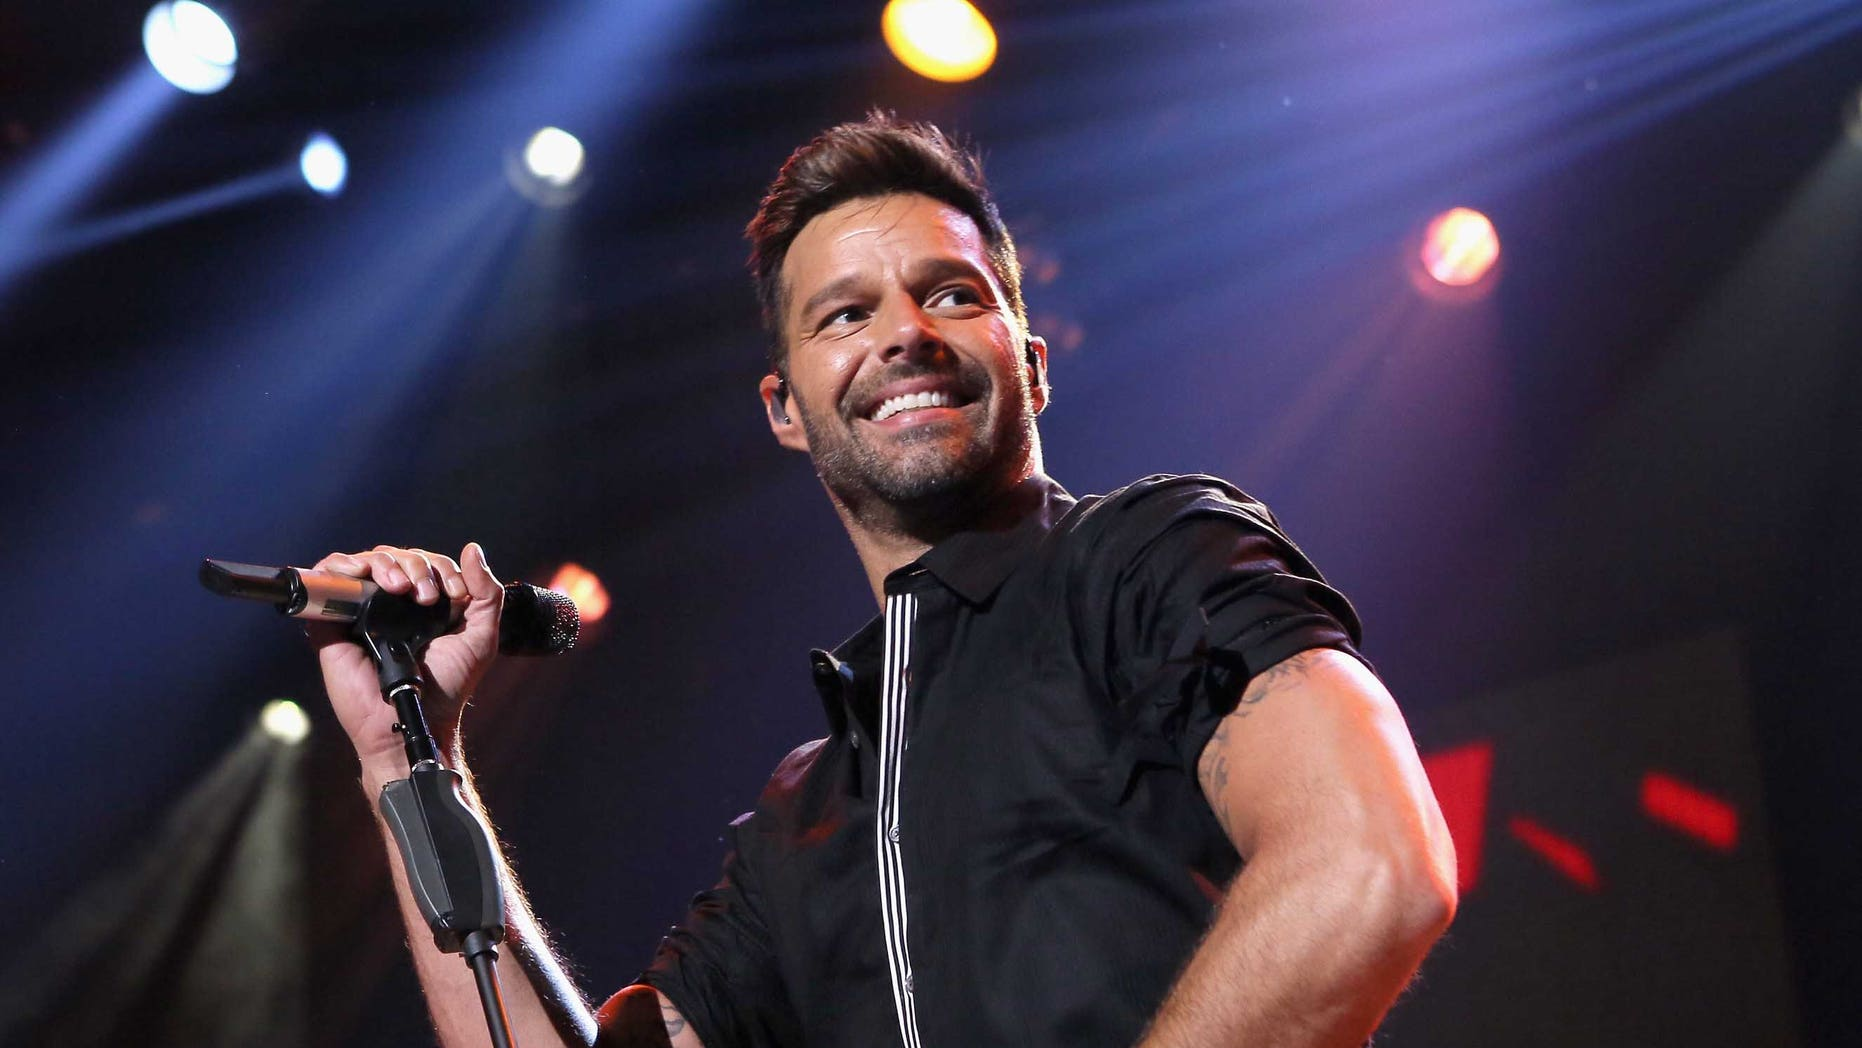 Ricky Martin at the iHeartRadio Theater Los Angeles on February 10, 2015 in Burbank, California.